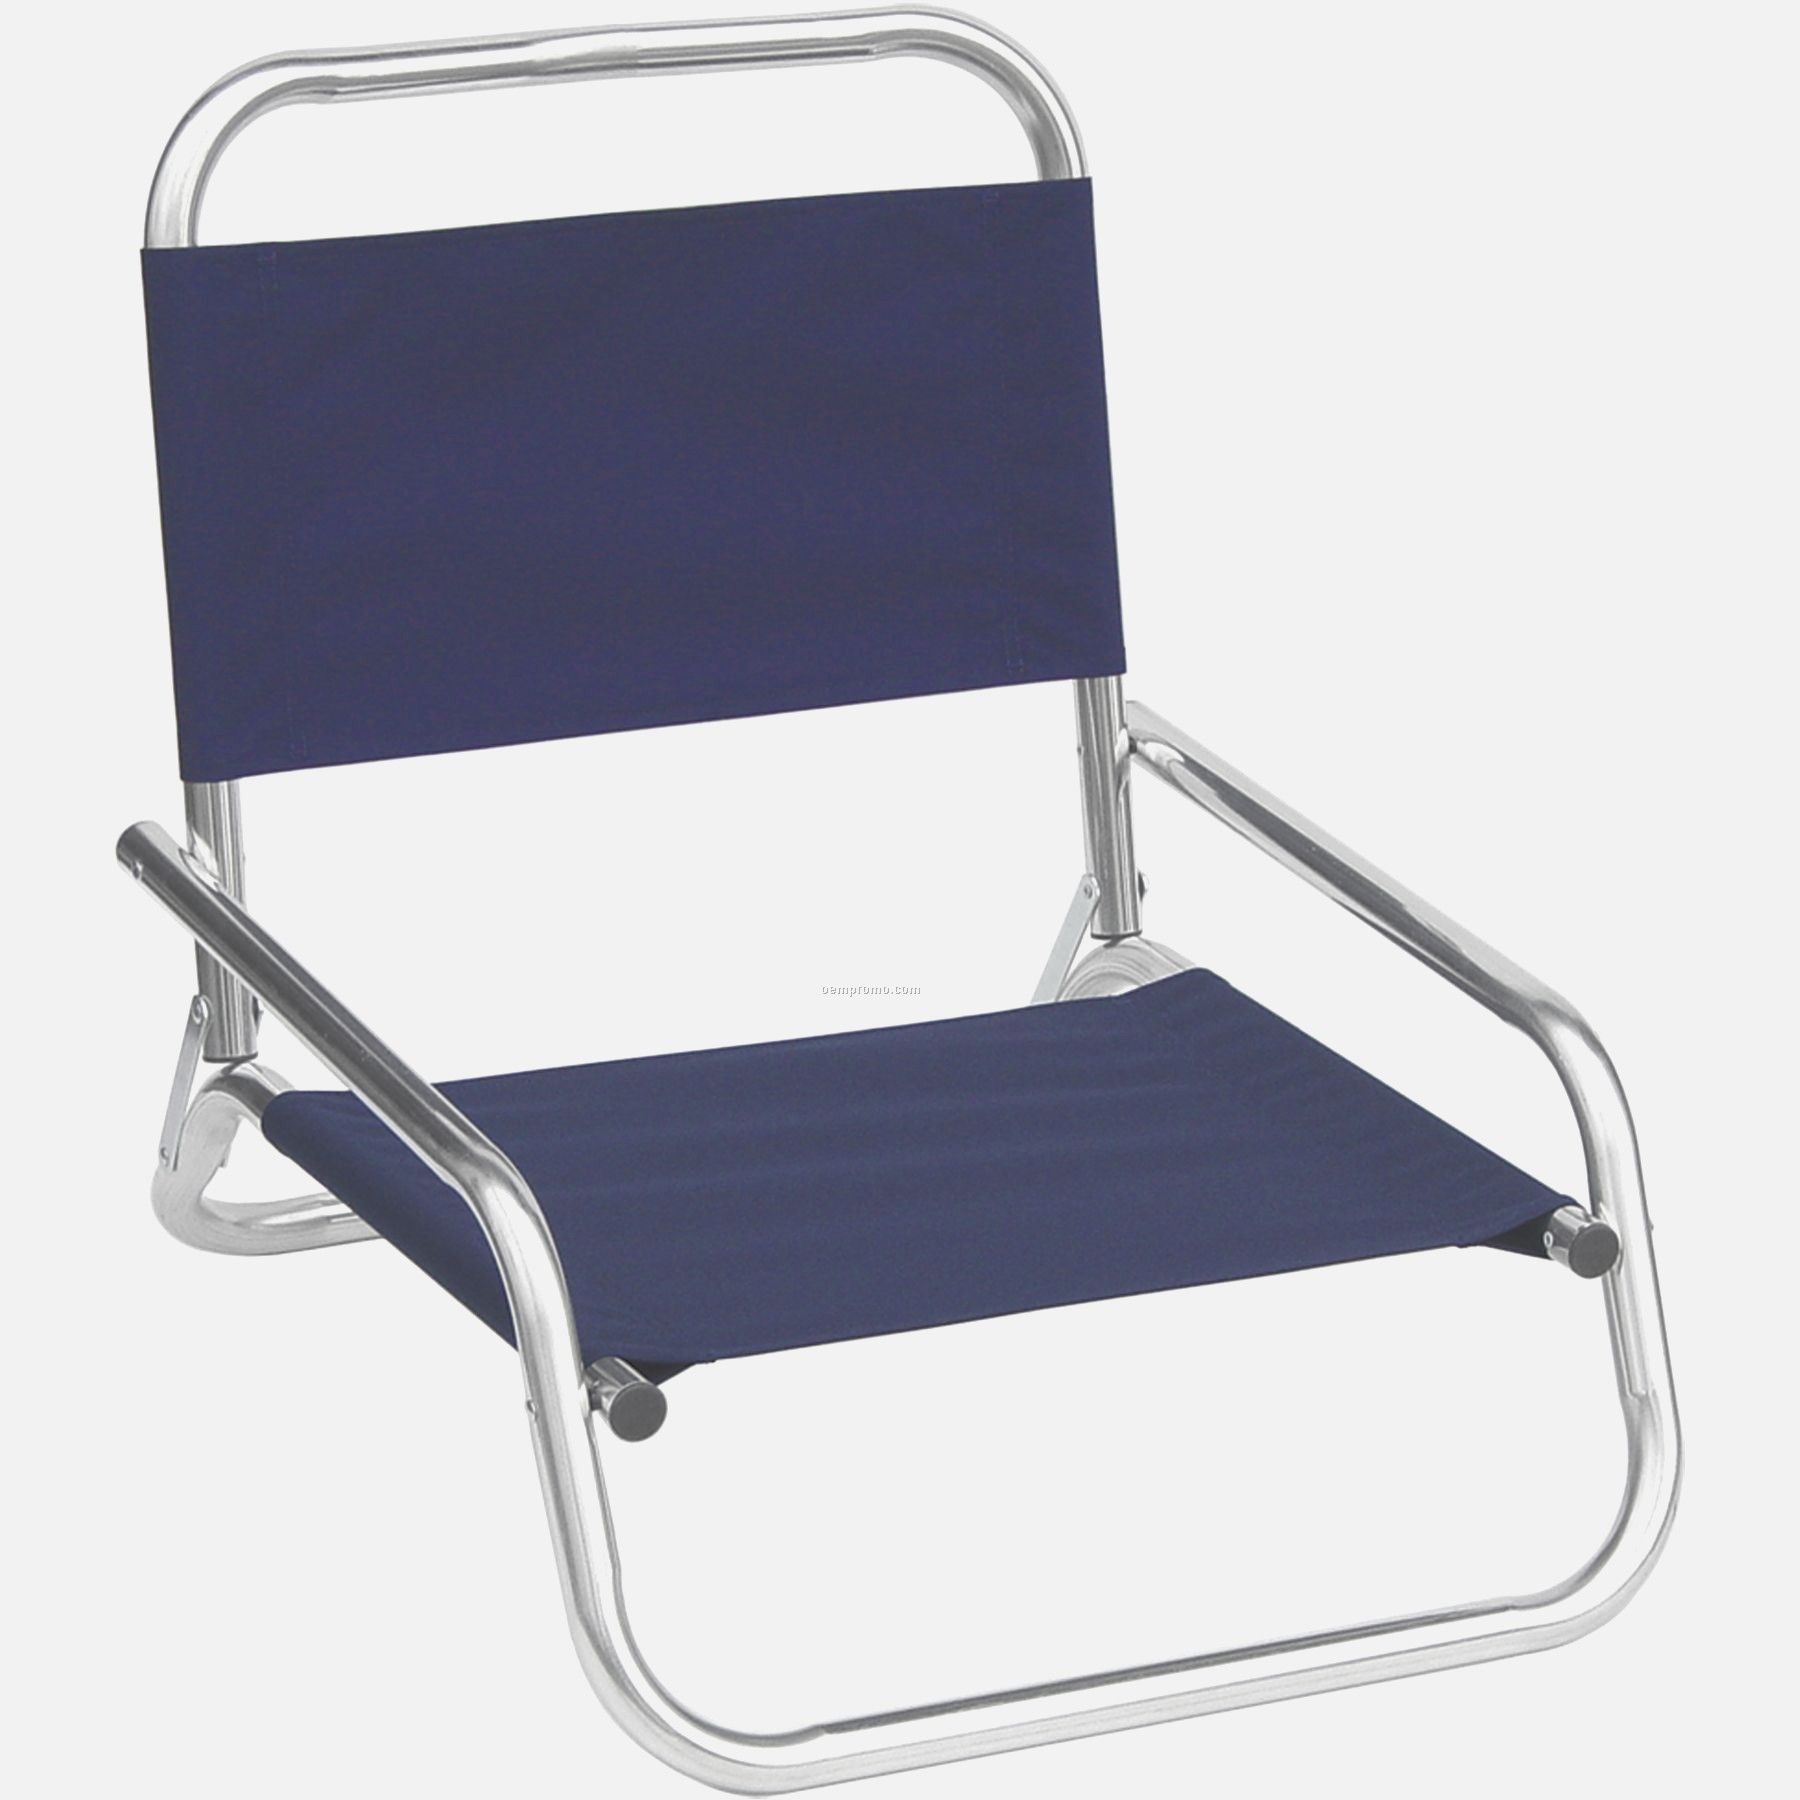 Low Beach Chair Low Back Beach Chairs Beach Chairs With Low Back Support Cheap